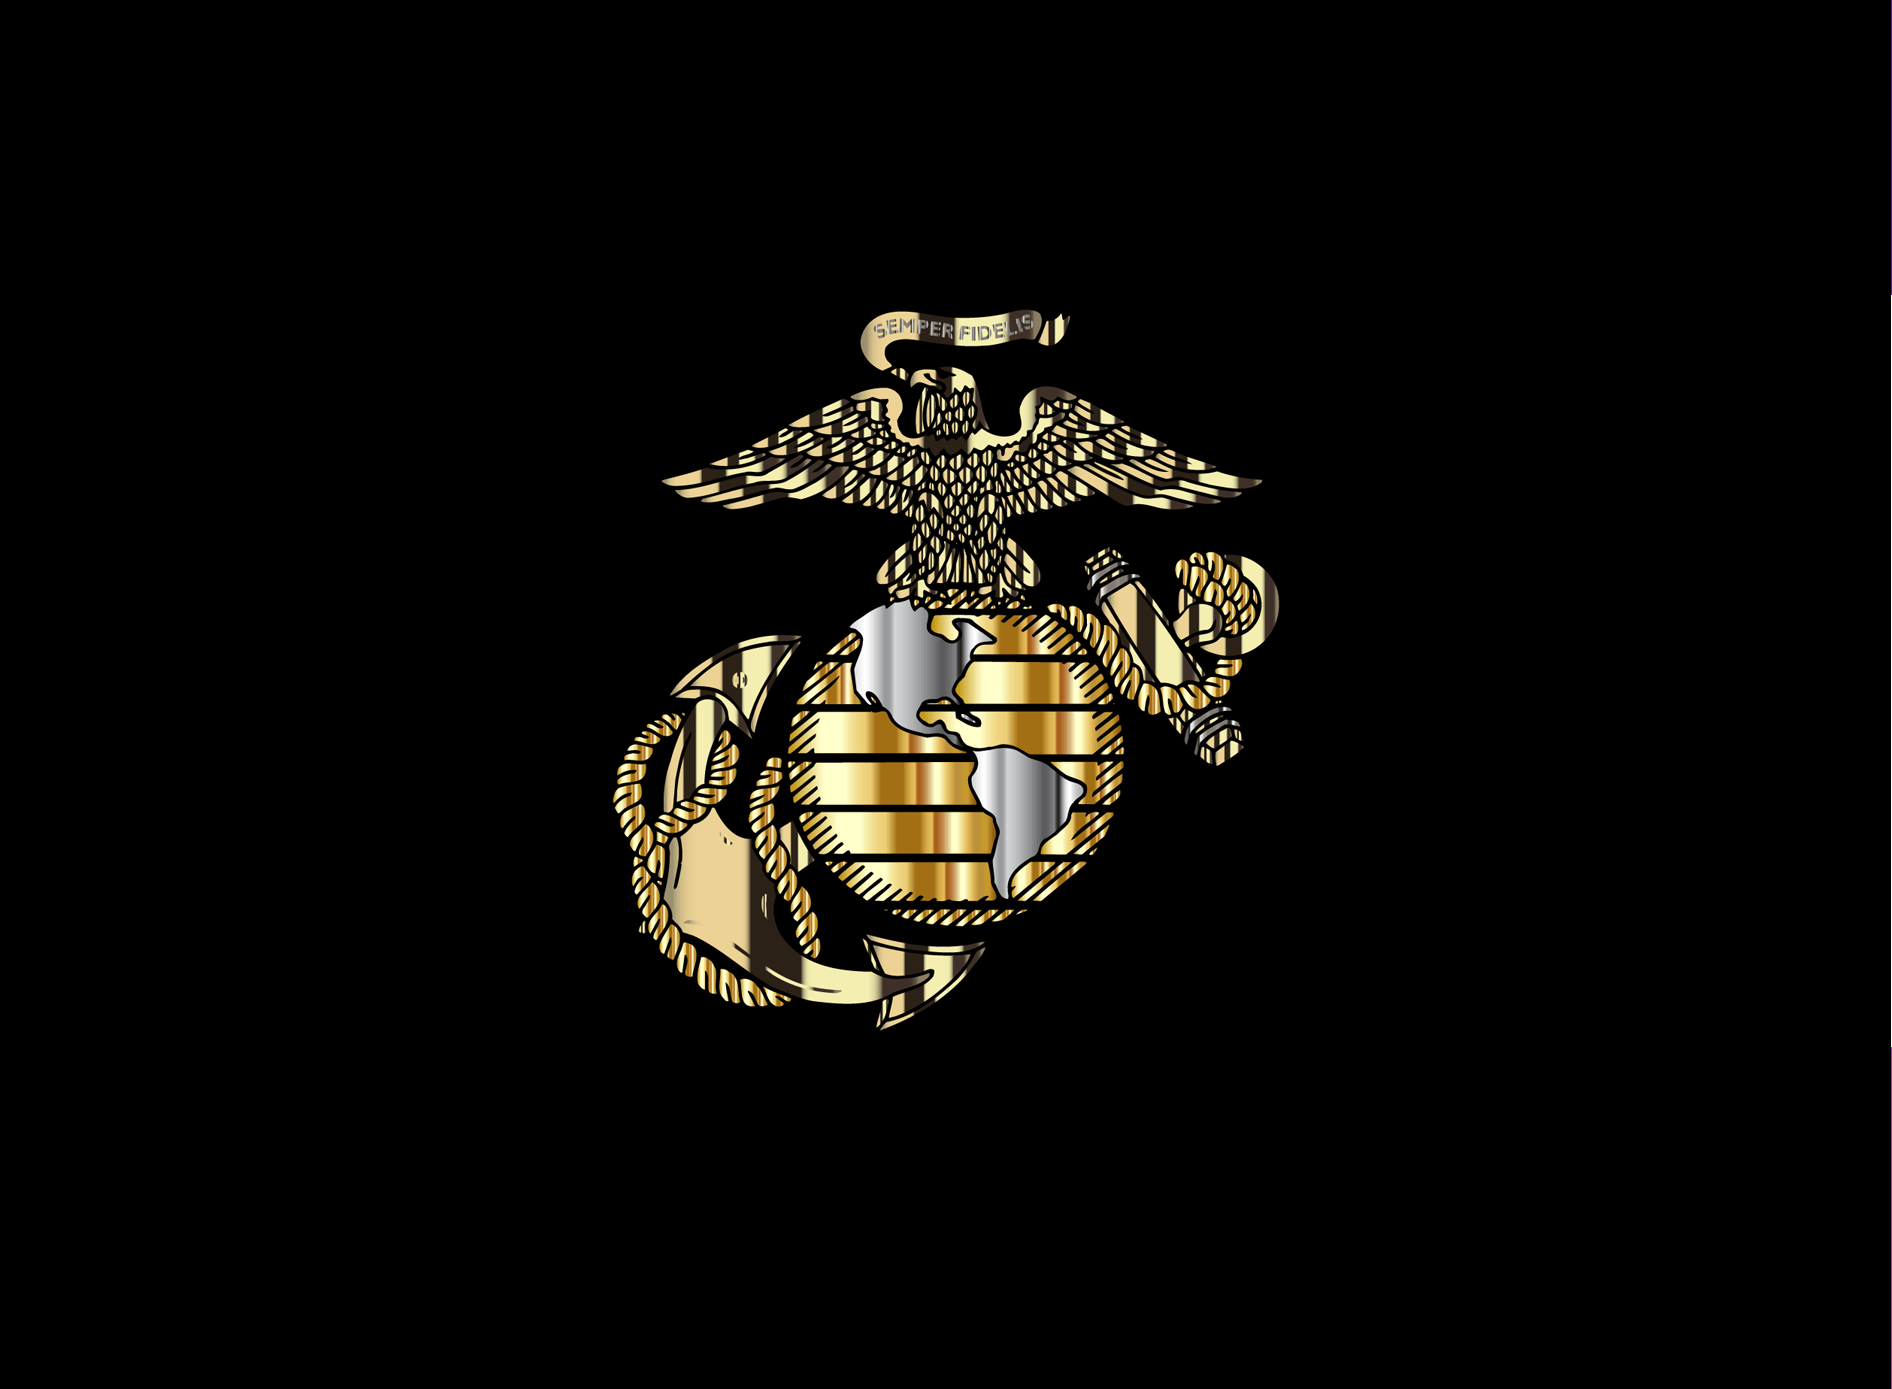 Usmc Logo Wallpapers Top Free Usmc Logo Backgrounds Wallpaperaccess